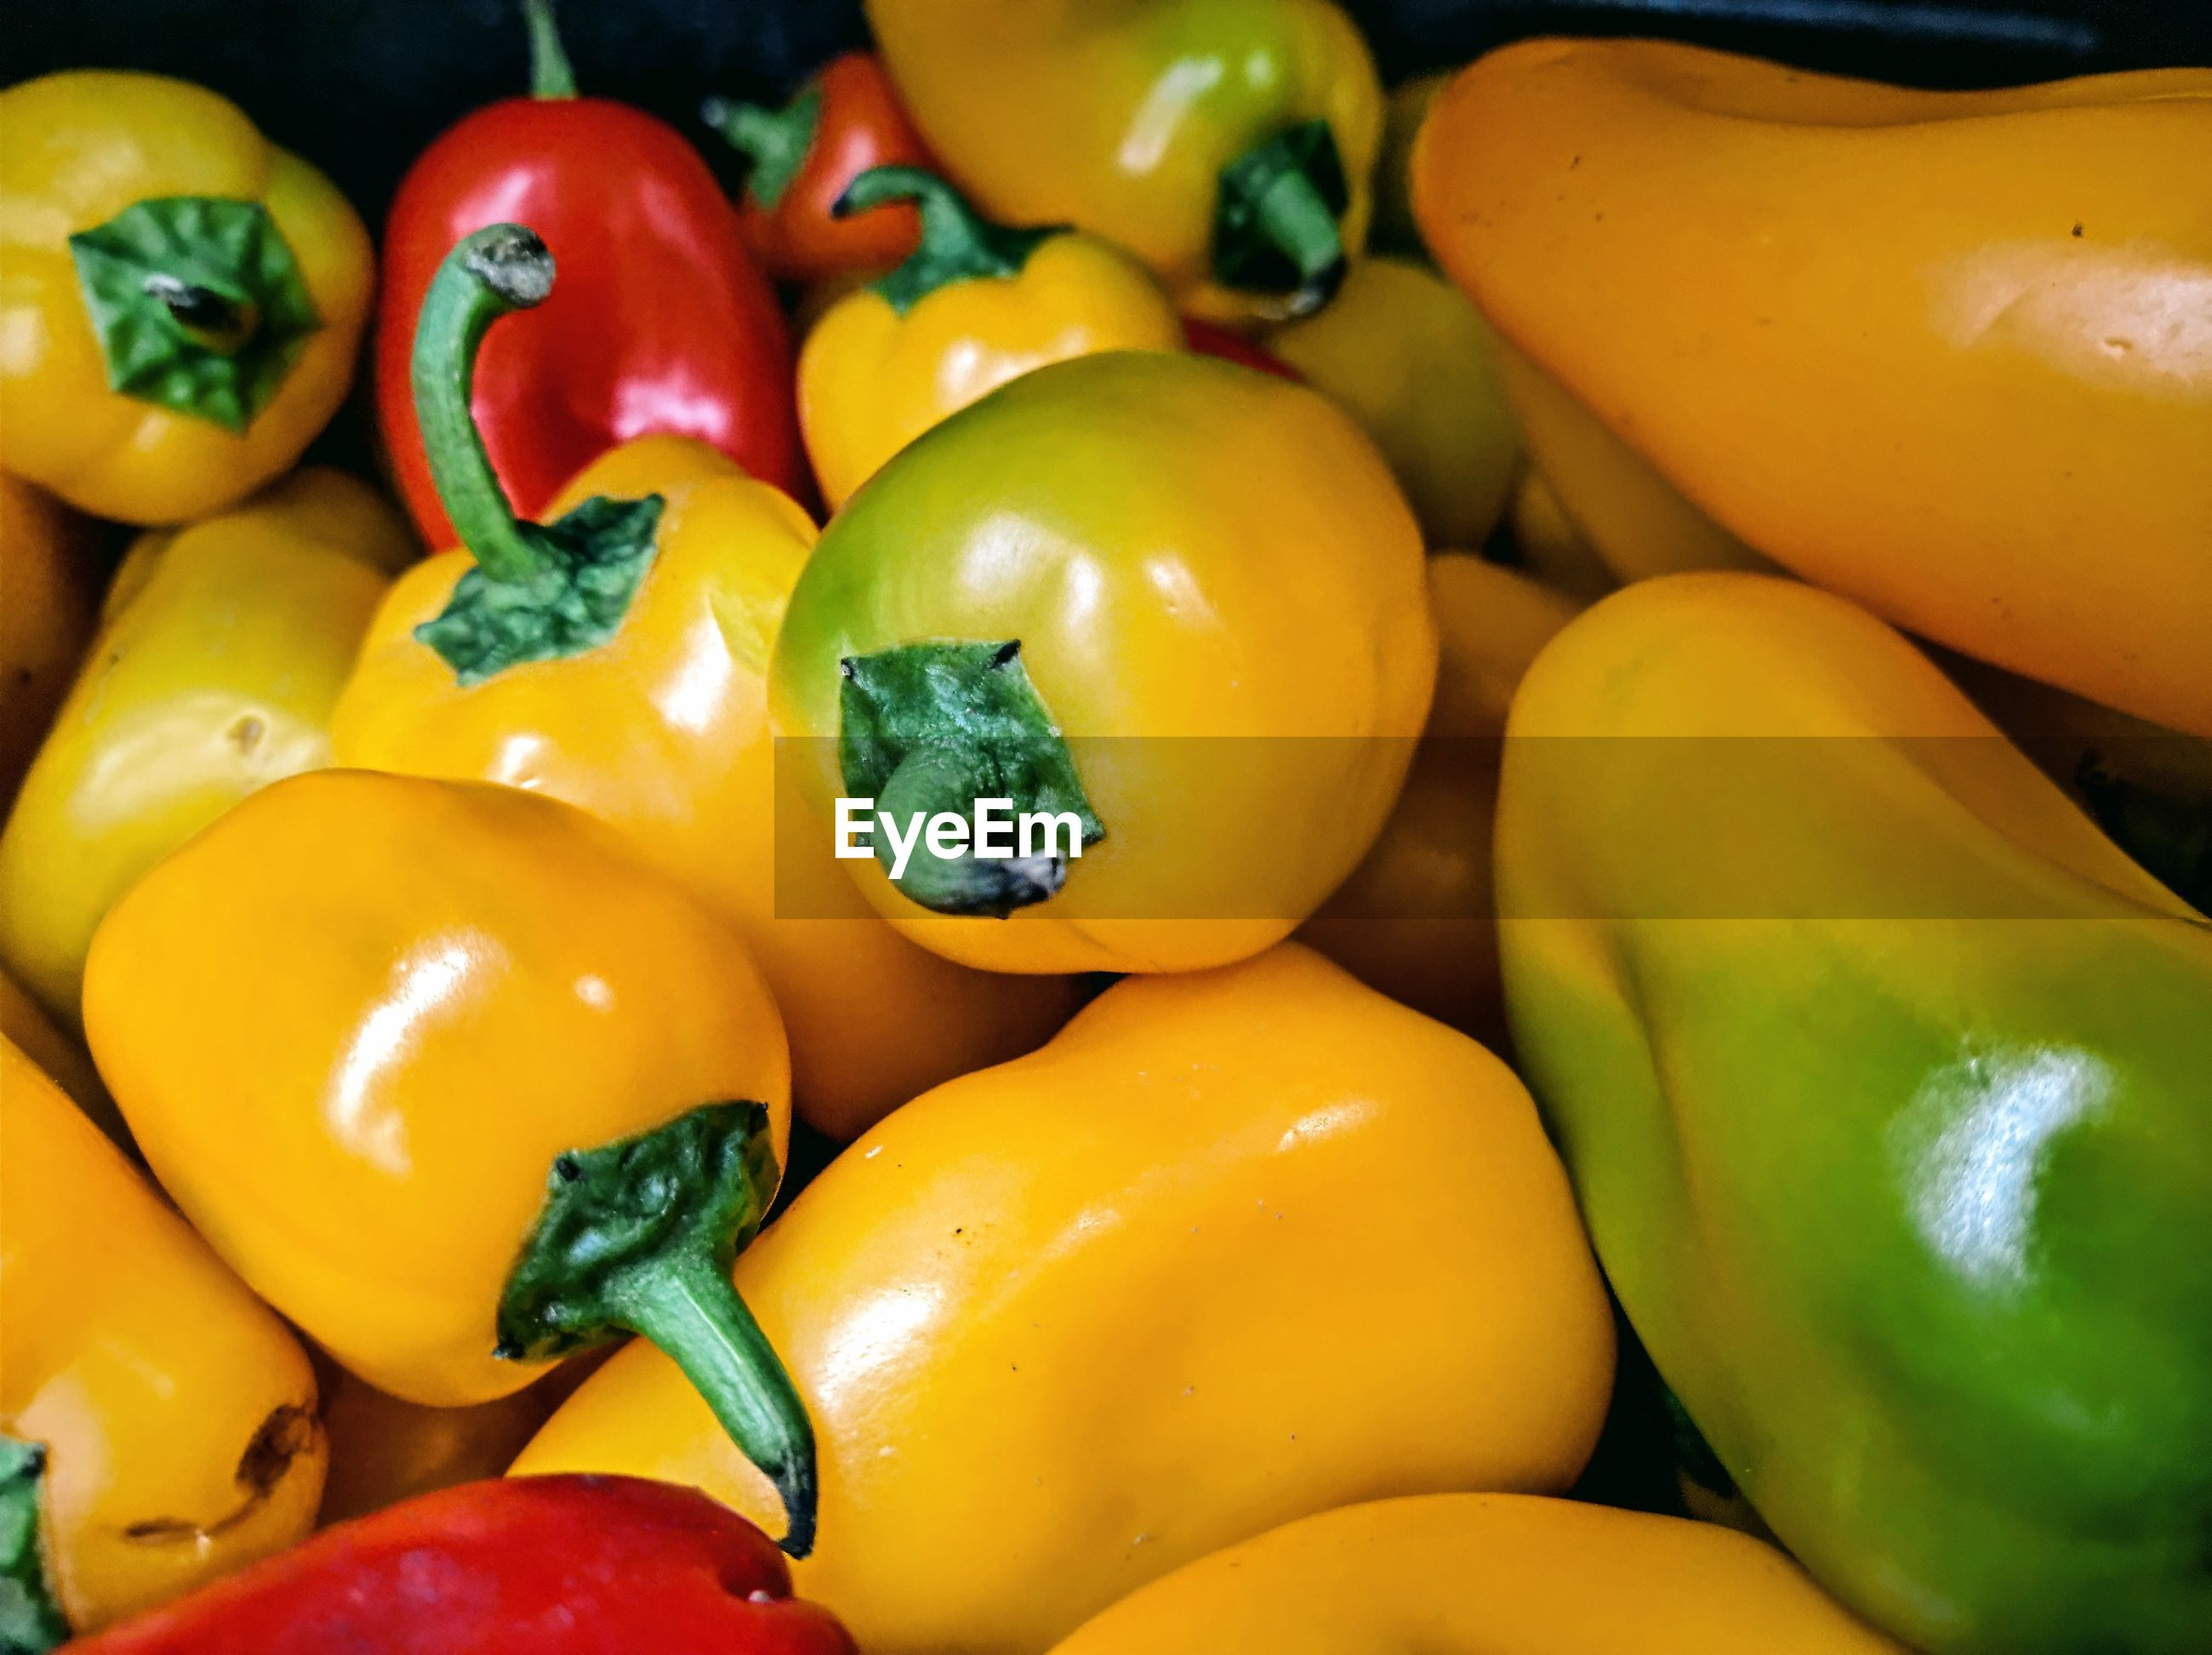 FULL FRAME SHOT OF YELLOW BELL PEPPERS AT MARKET